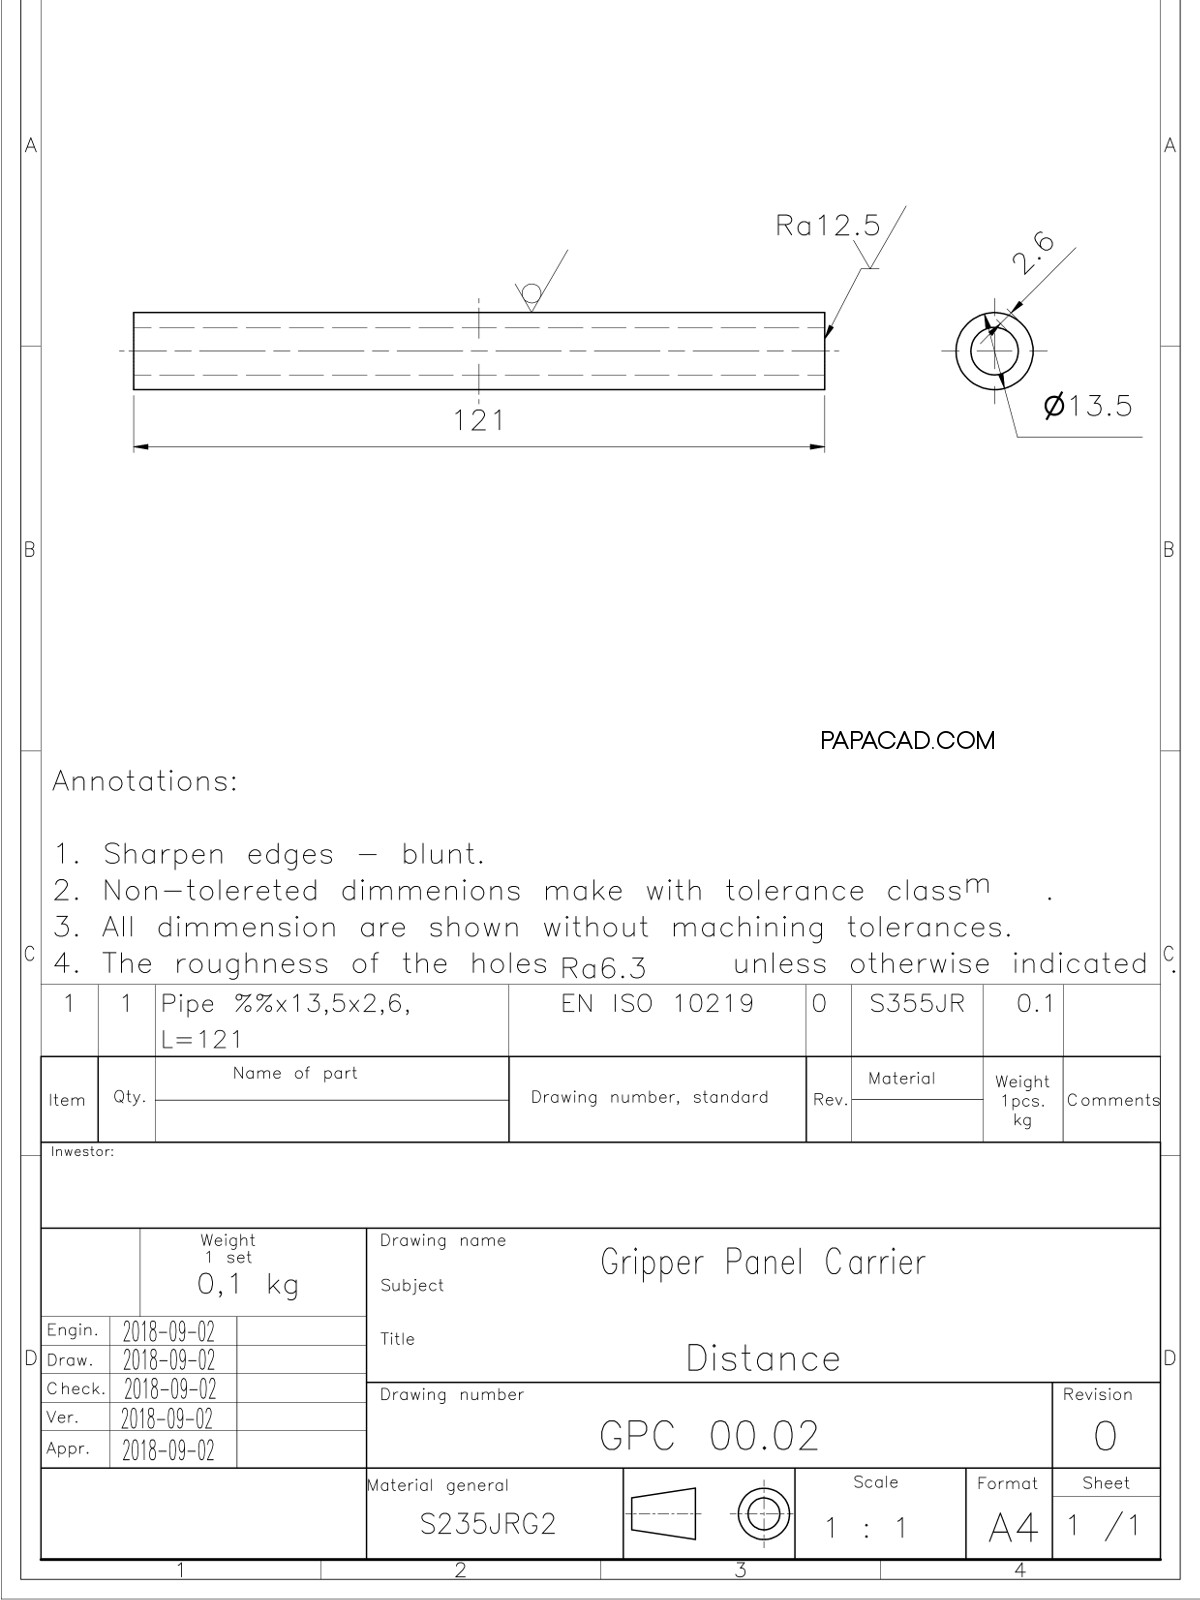 AutoCAD Project Gripper Panel carrier papacad.com